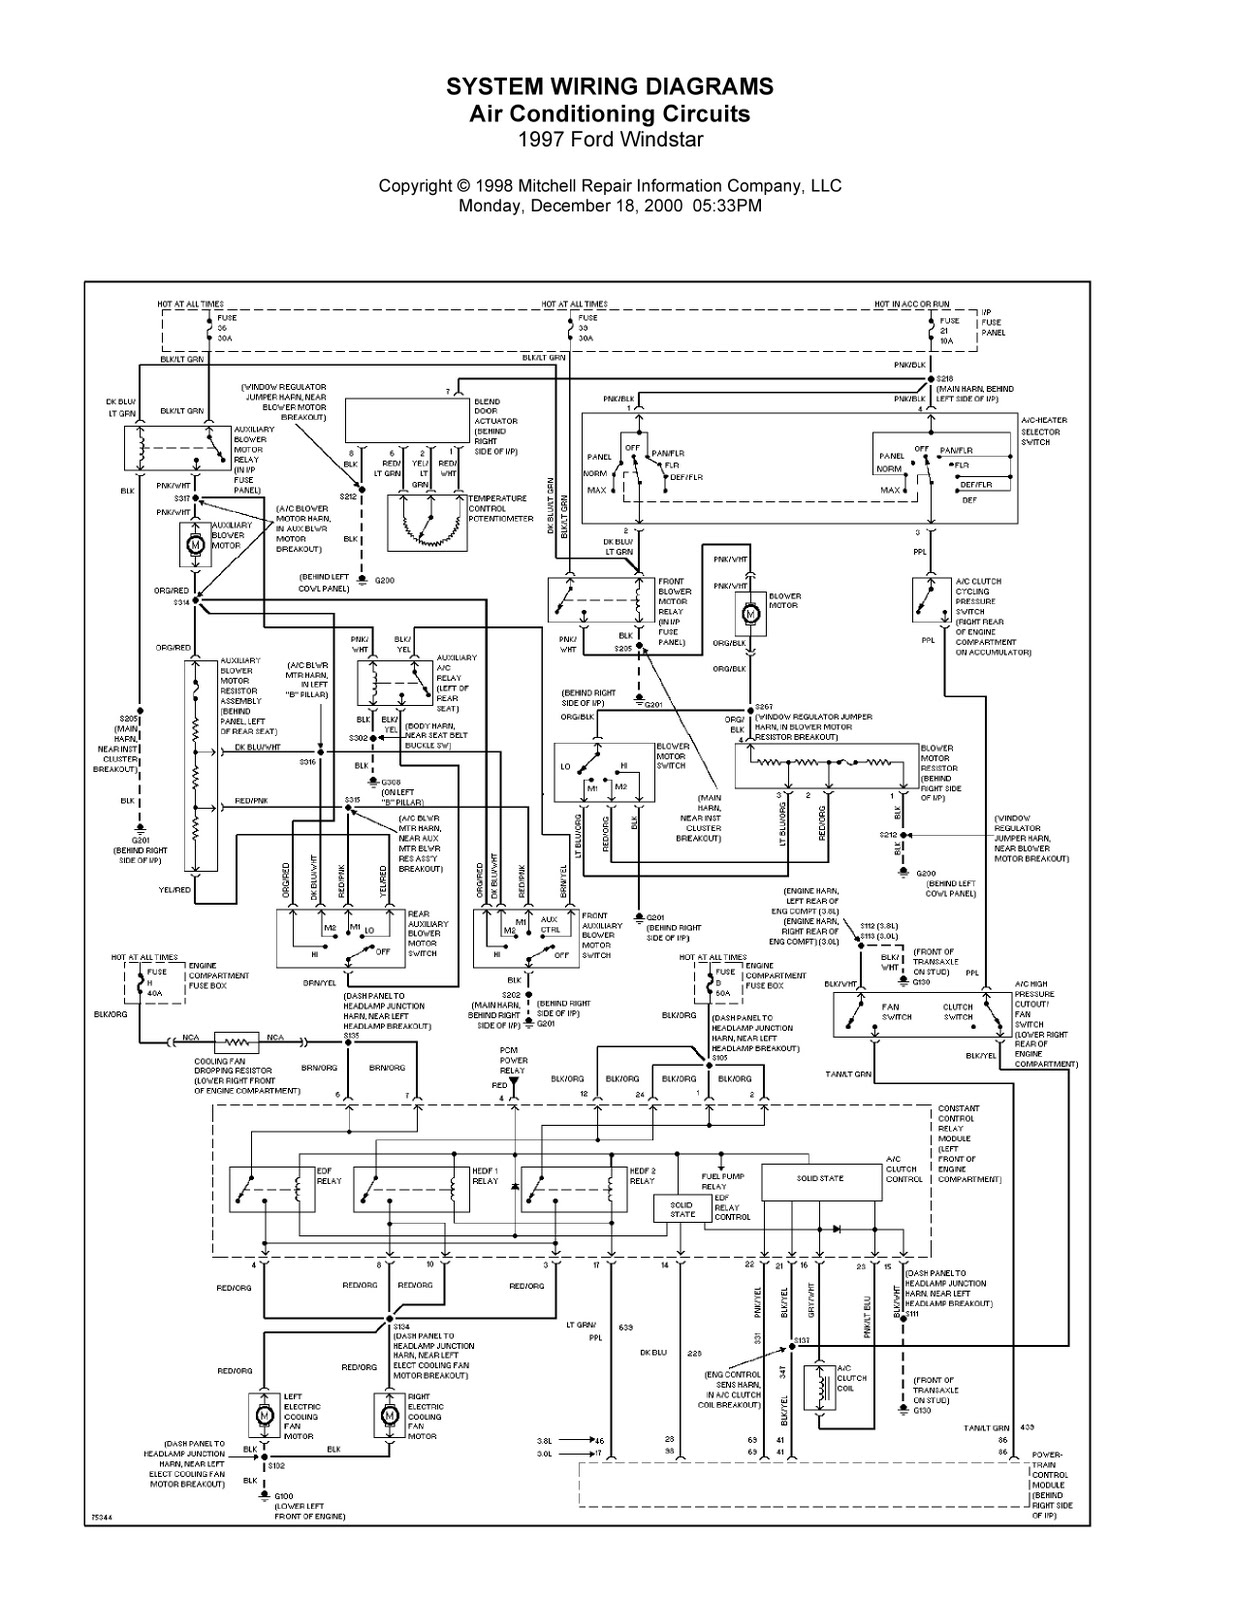 Ford Wiring Diagrams Ford Windstar System Wiring